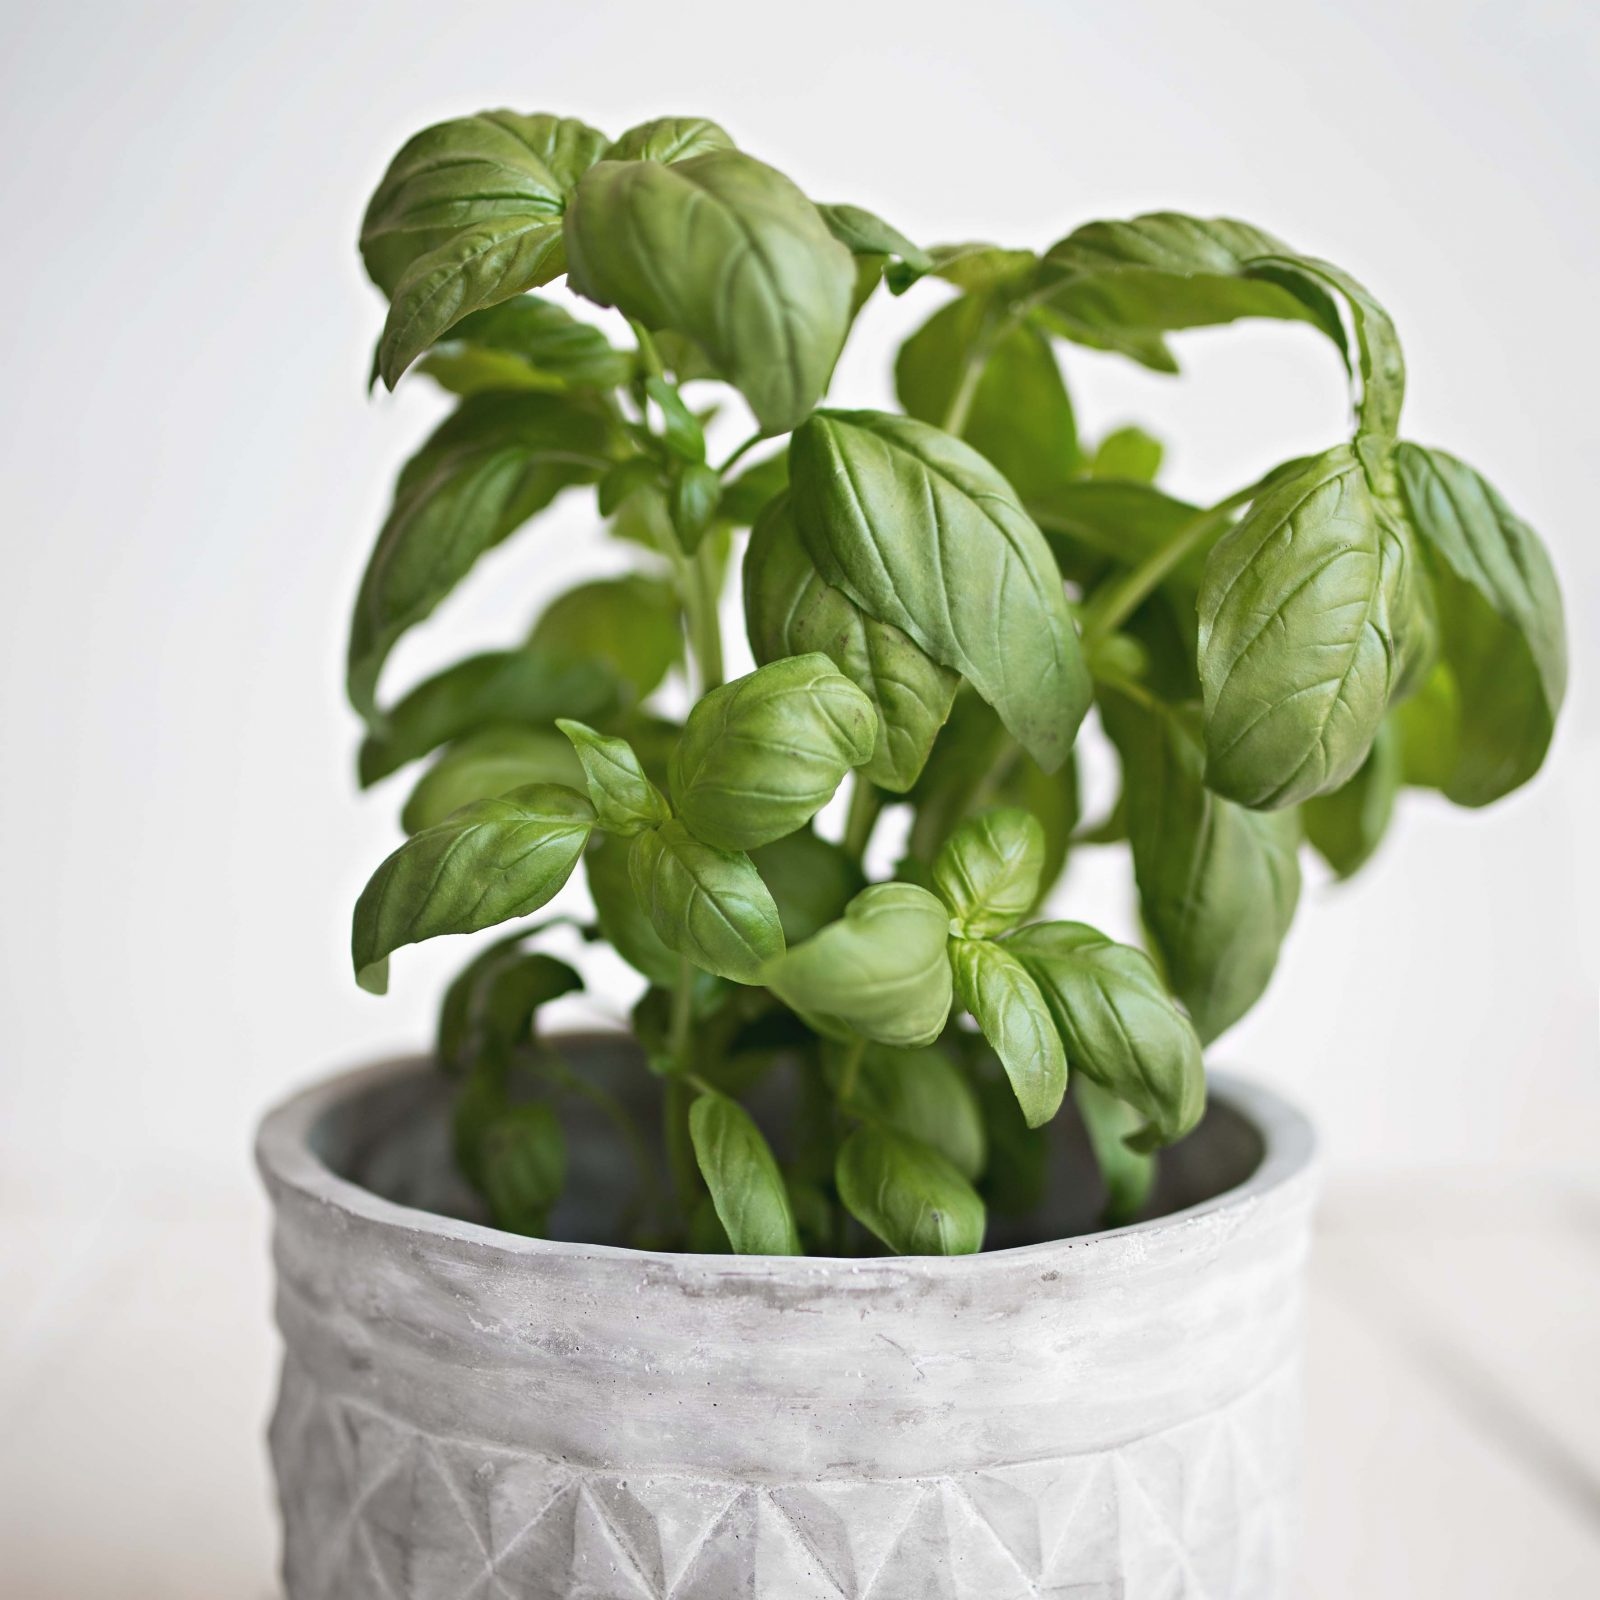 Pot full of basil